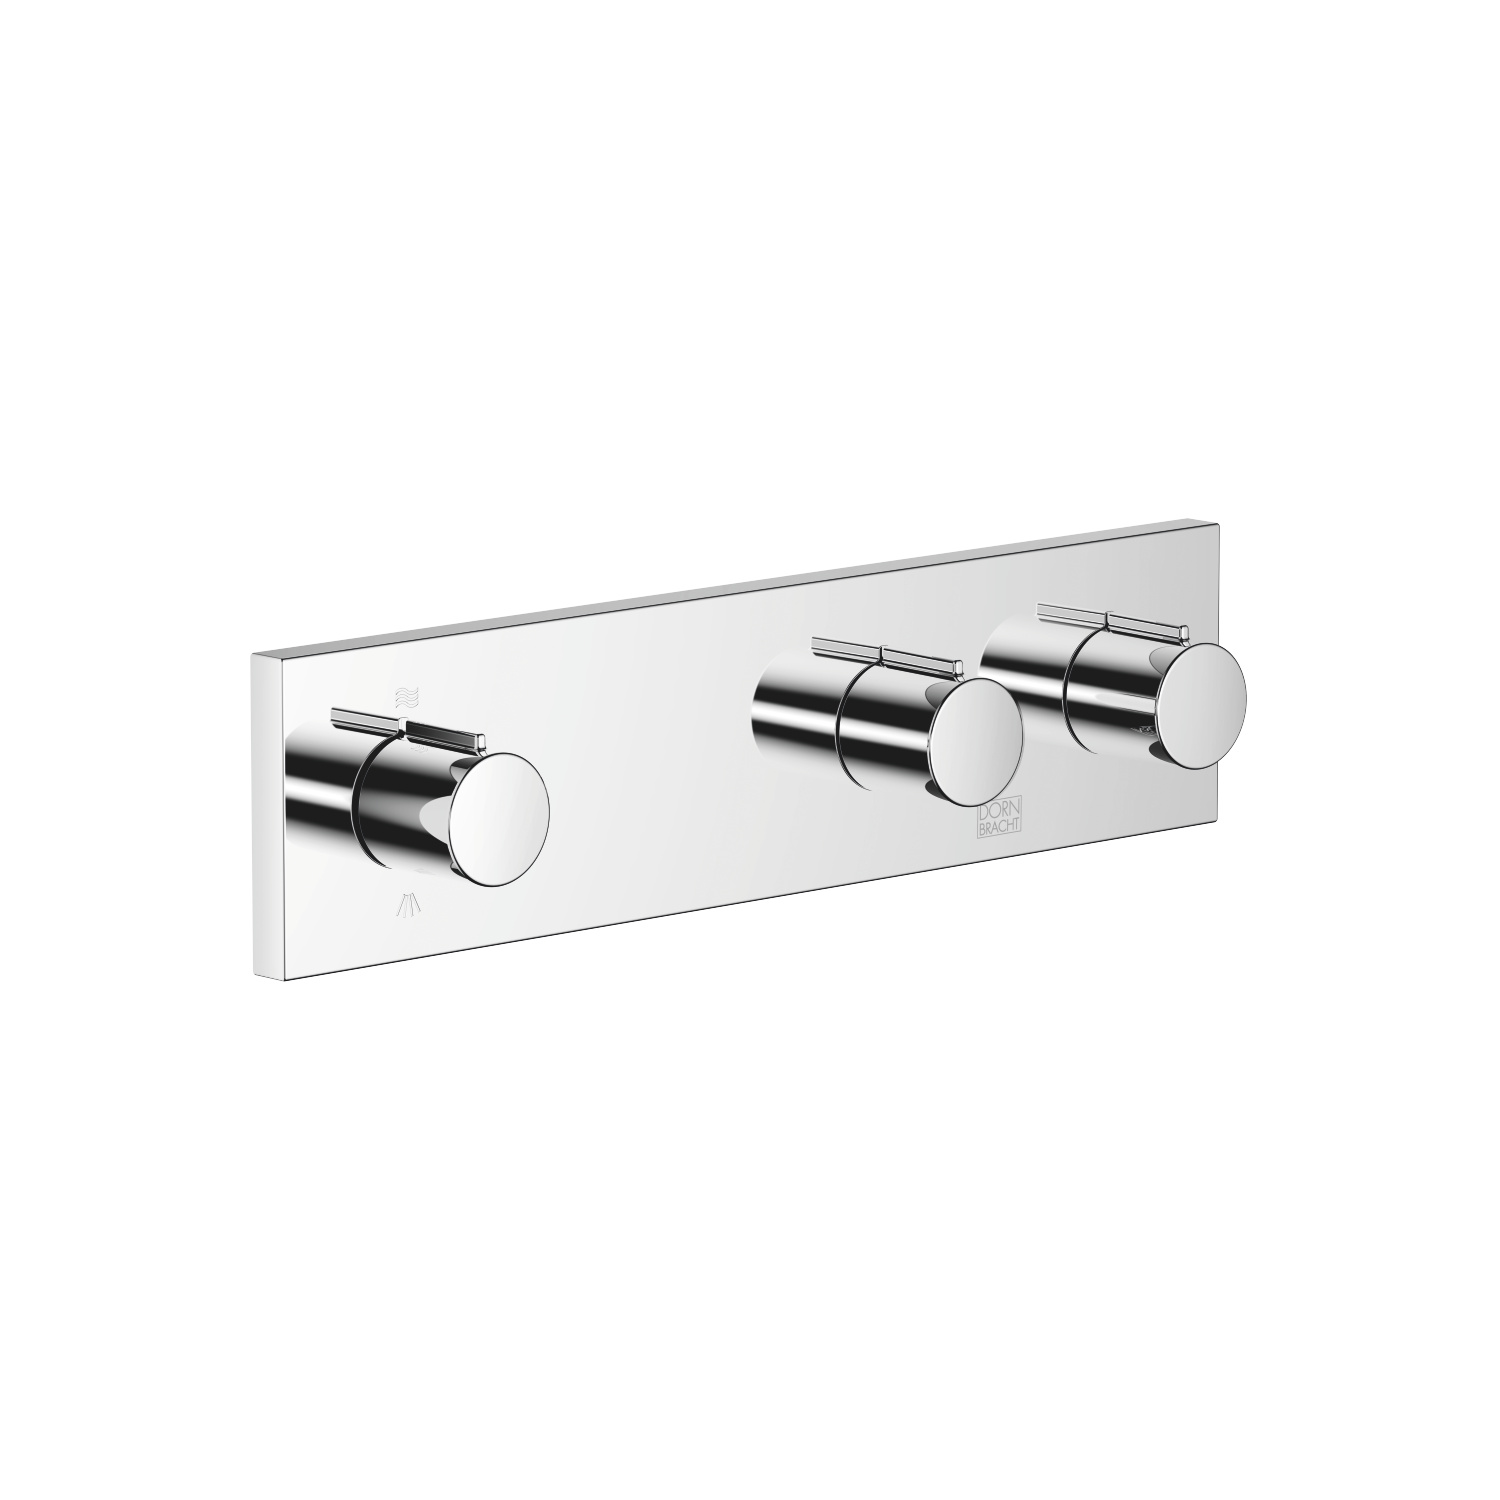 Volume Control with two volume controls with diverter for wall-mounted installation - polished chrome